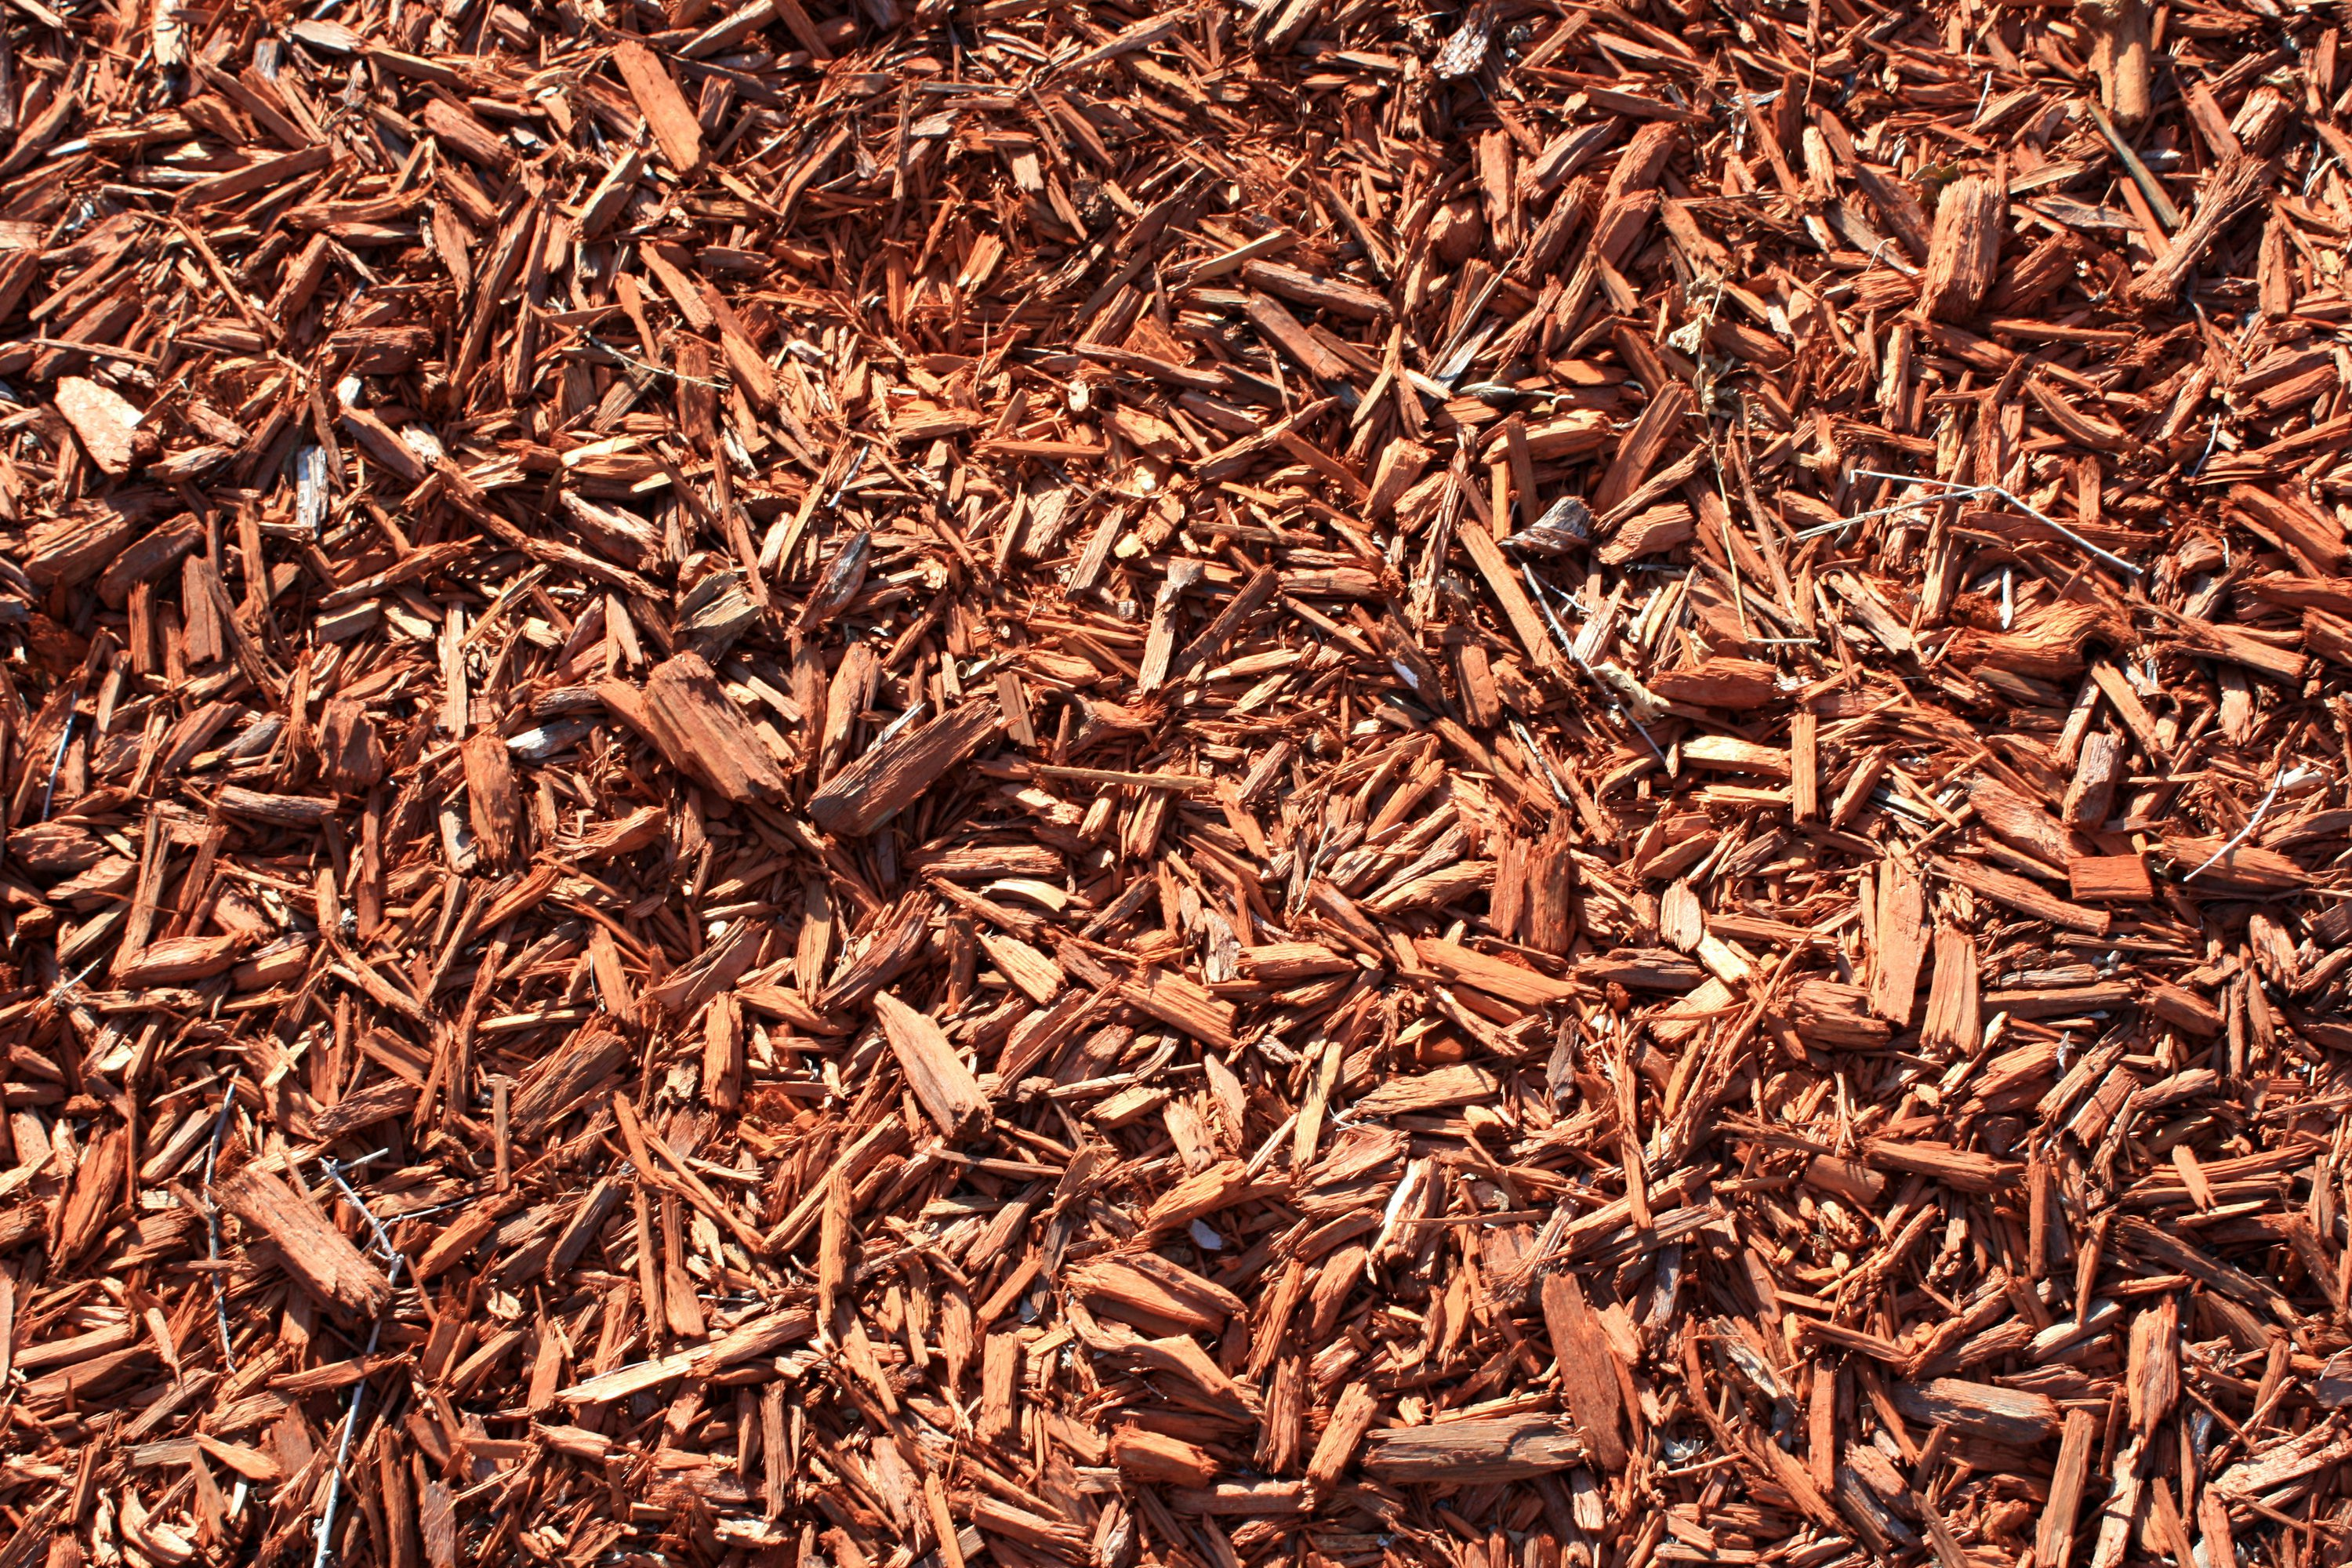 Rubber Bark Chips ~ Red wood chips photos public domain